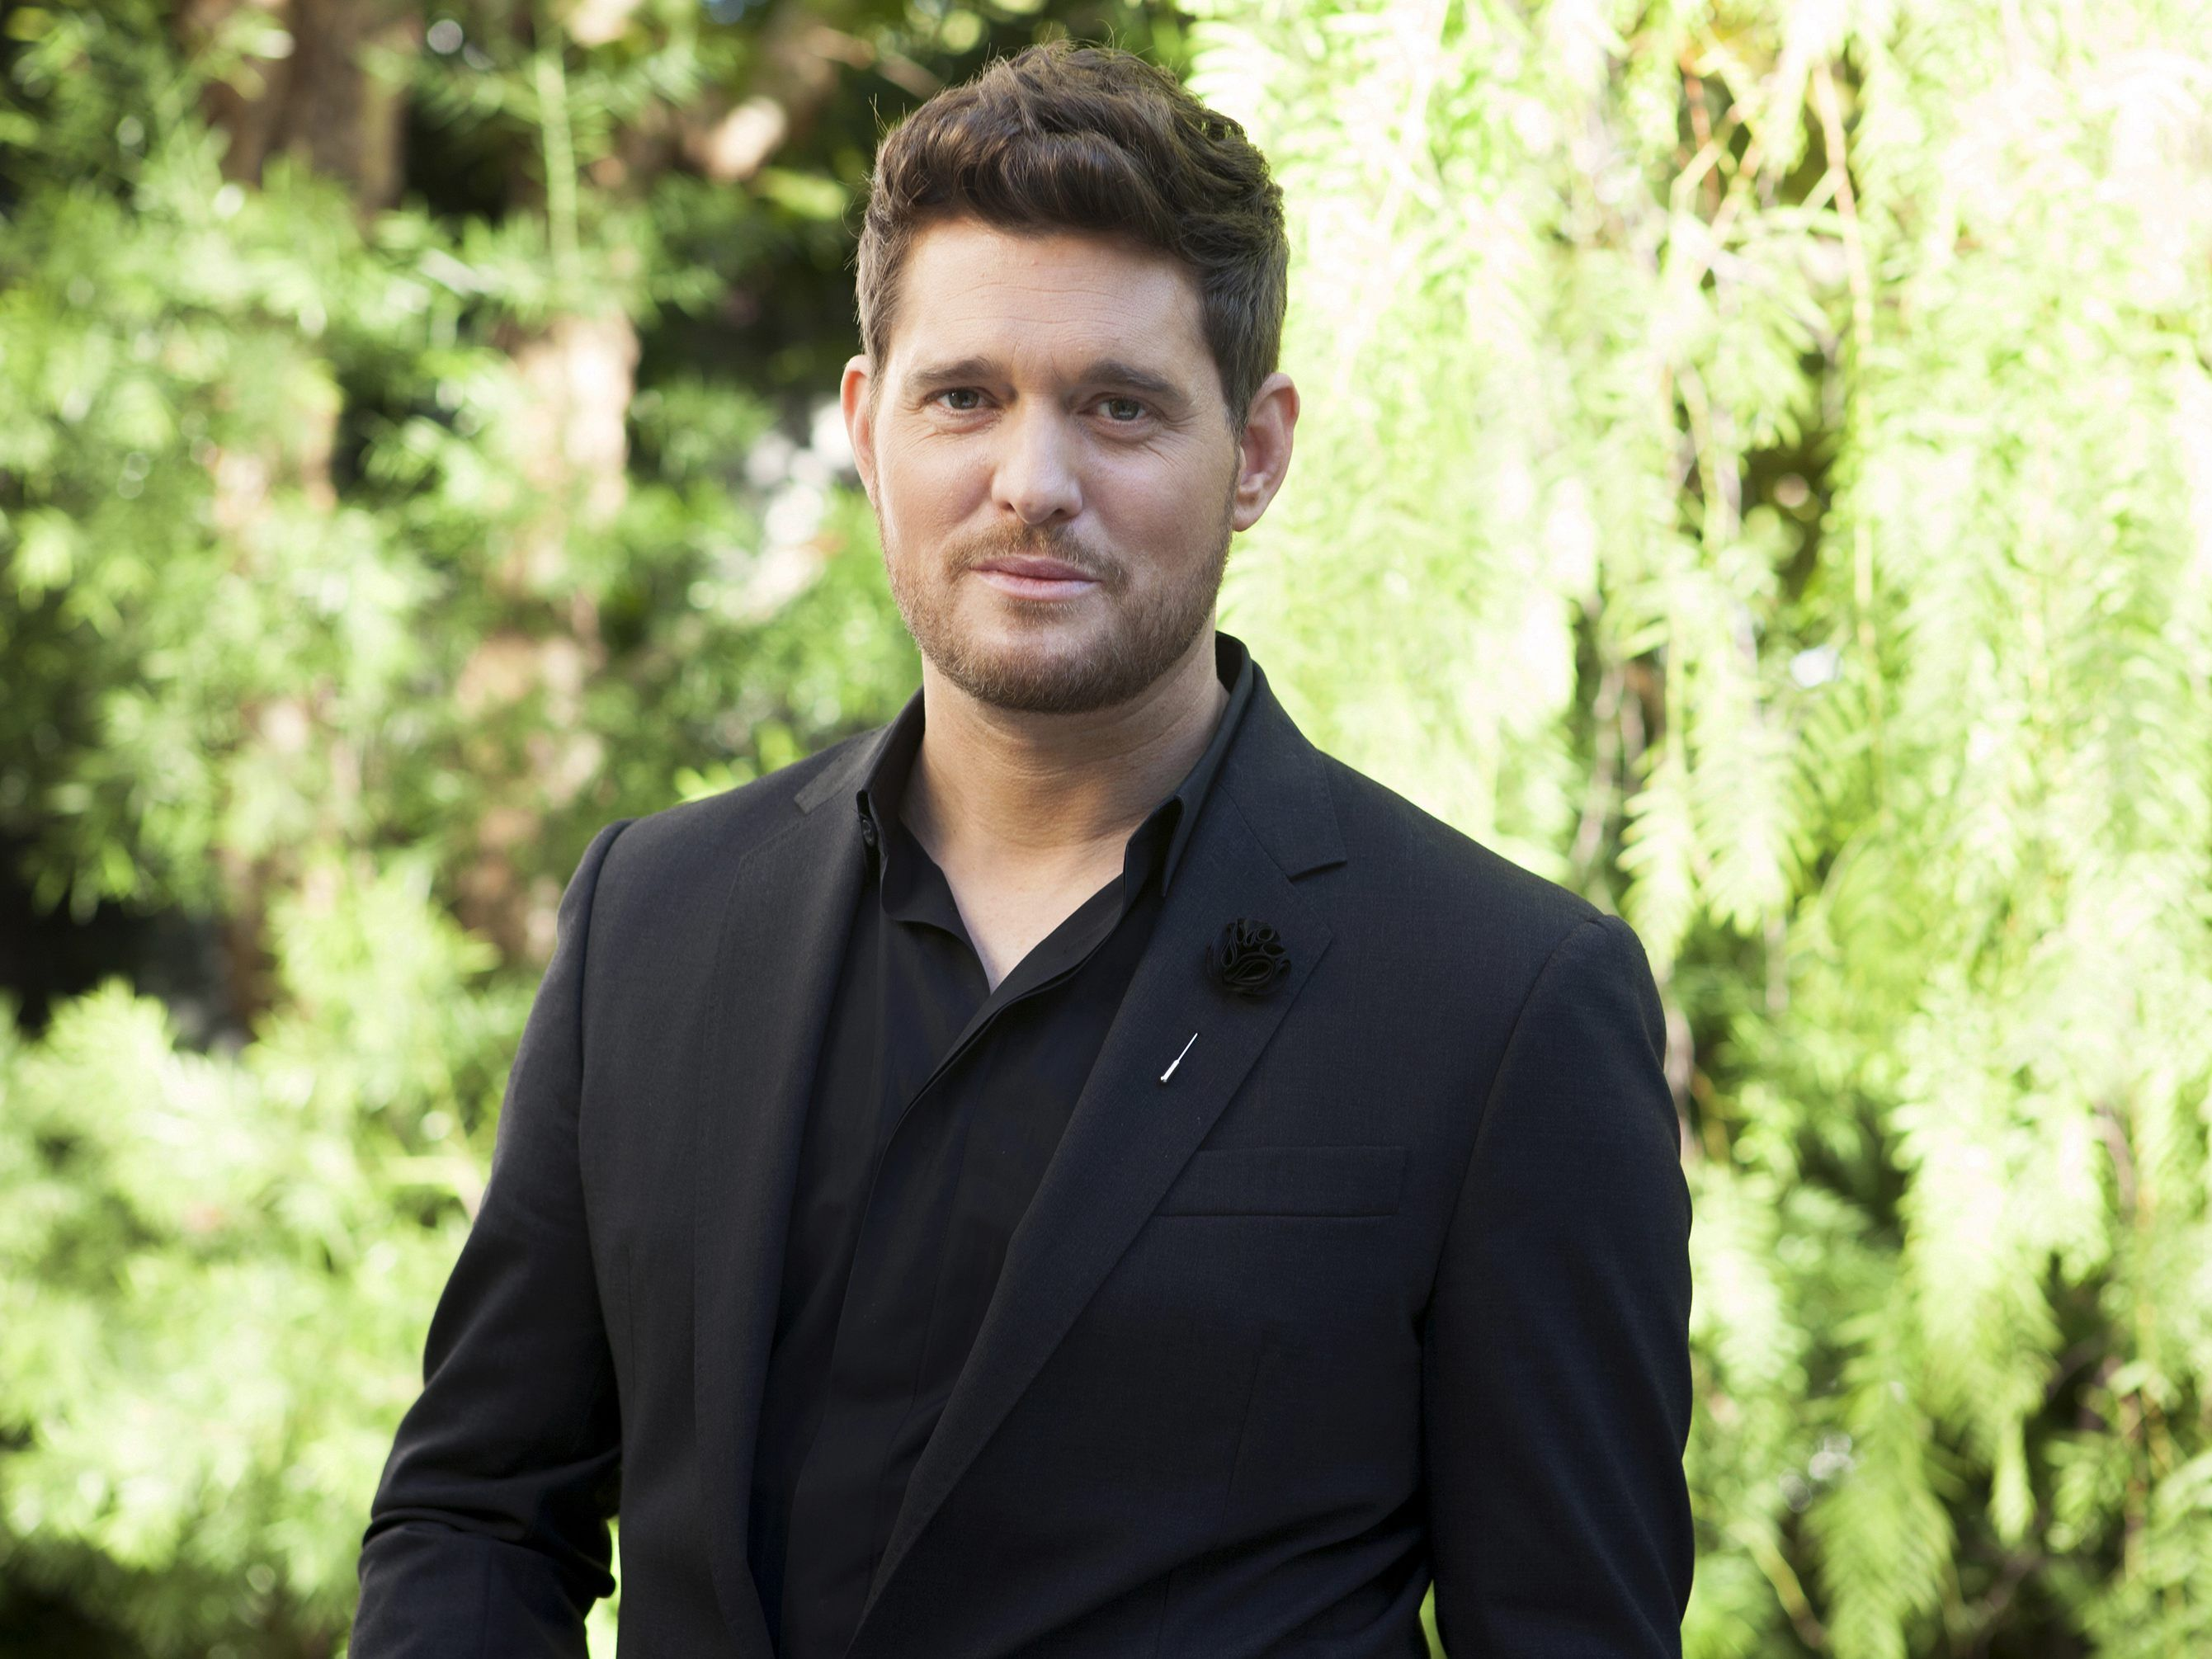 Michael Buble kommt am 21. September 2019 nach Wien.